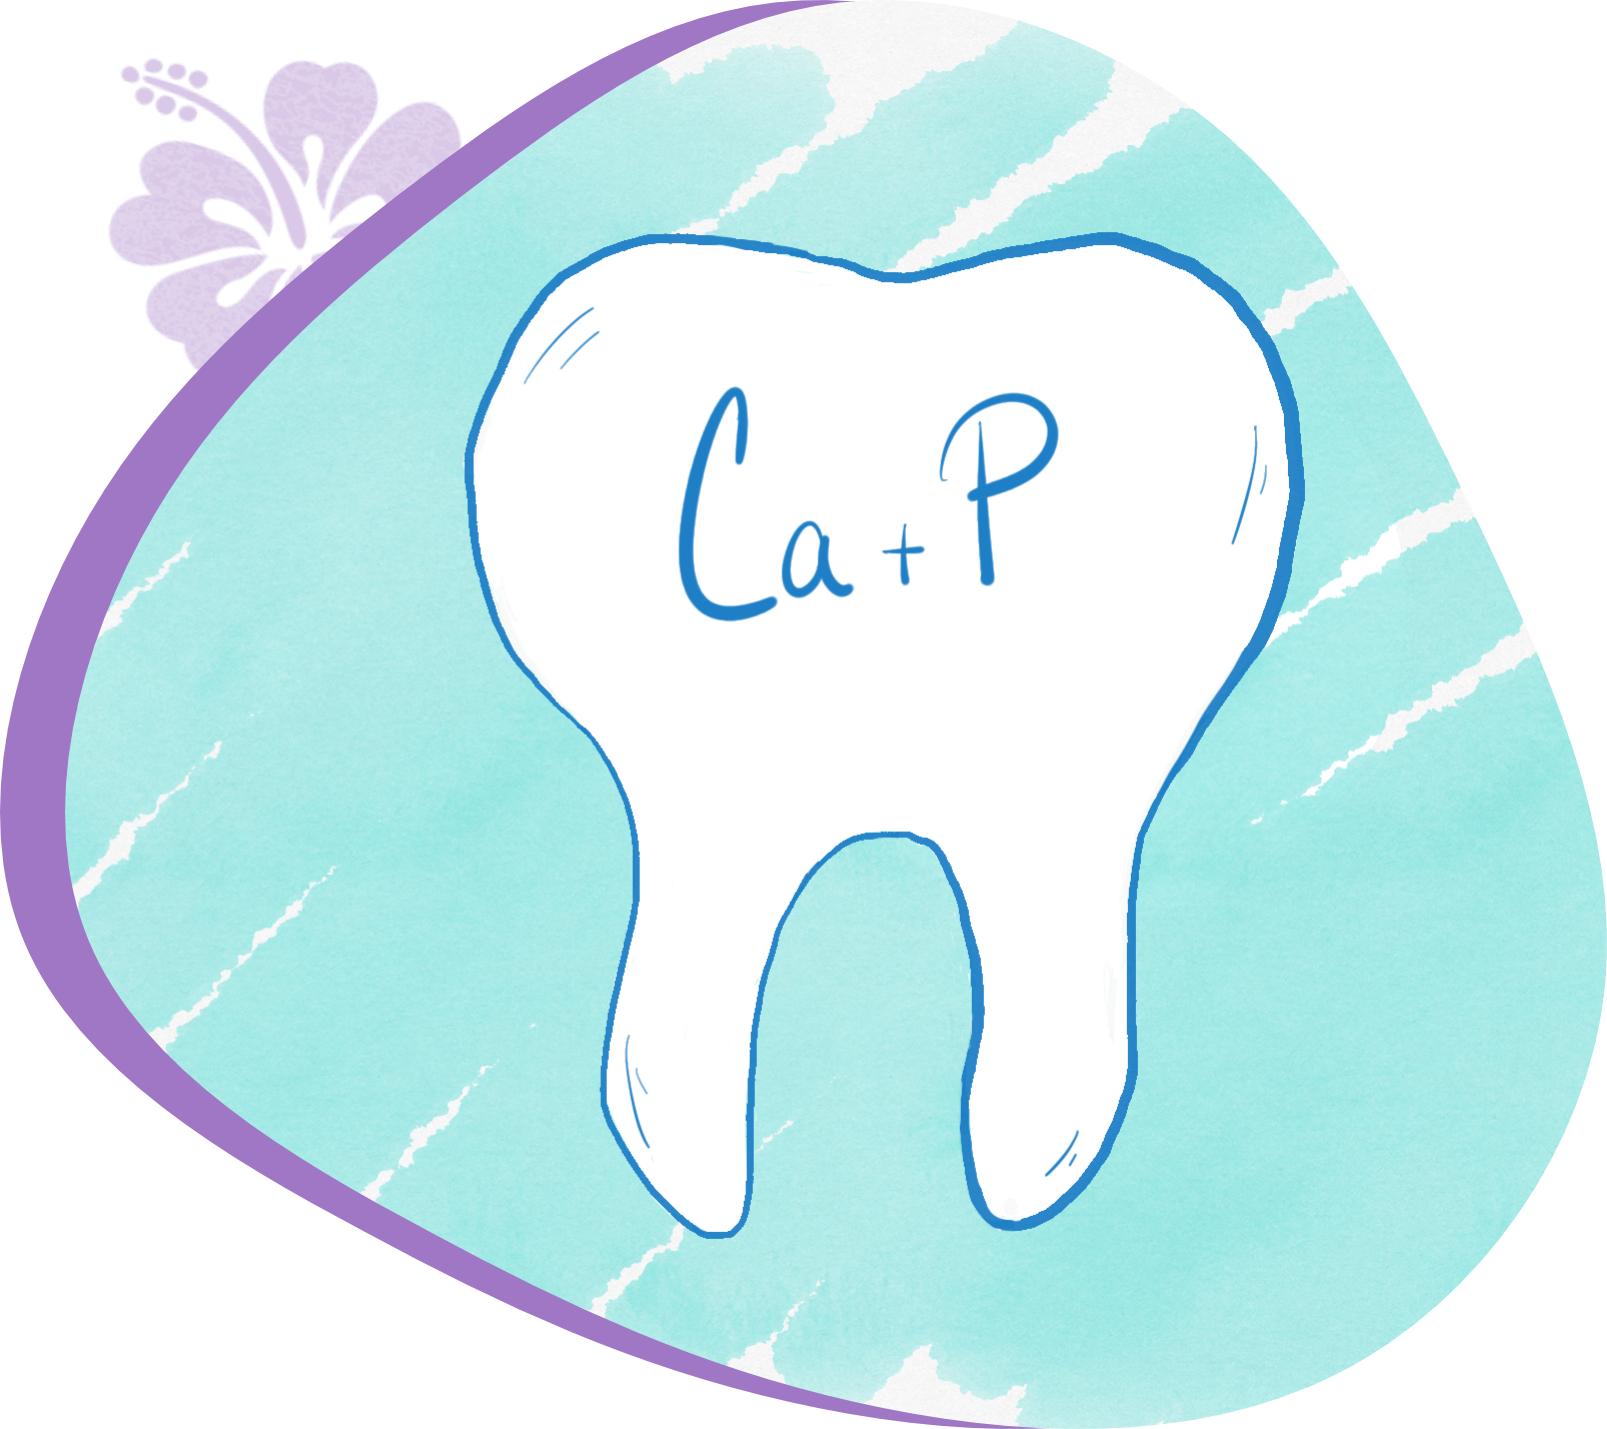 Tooth with Ca + P